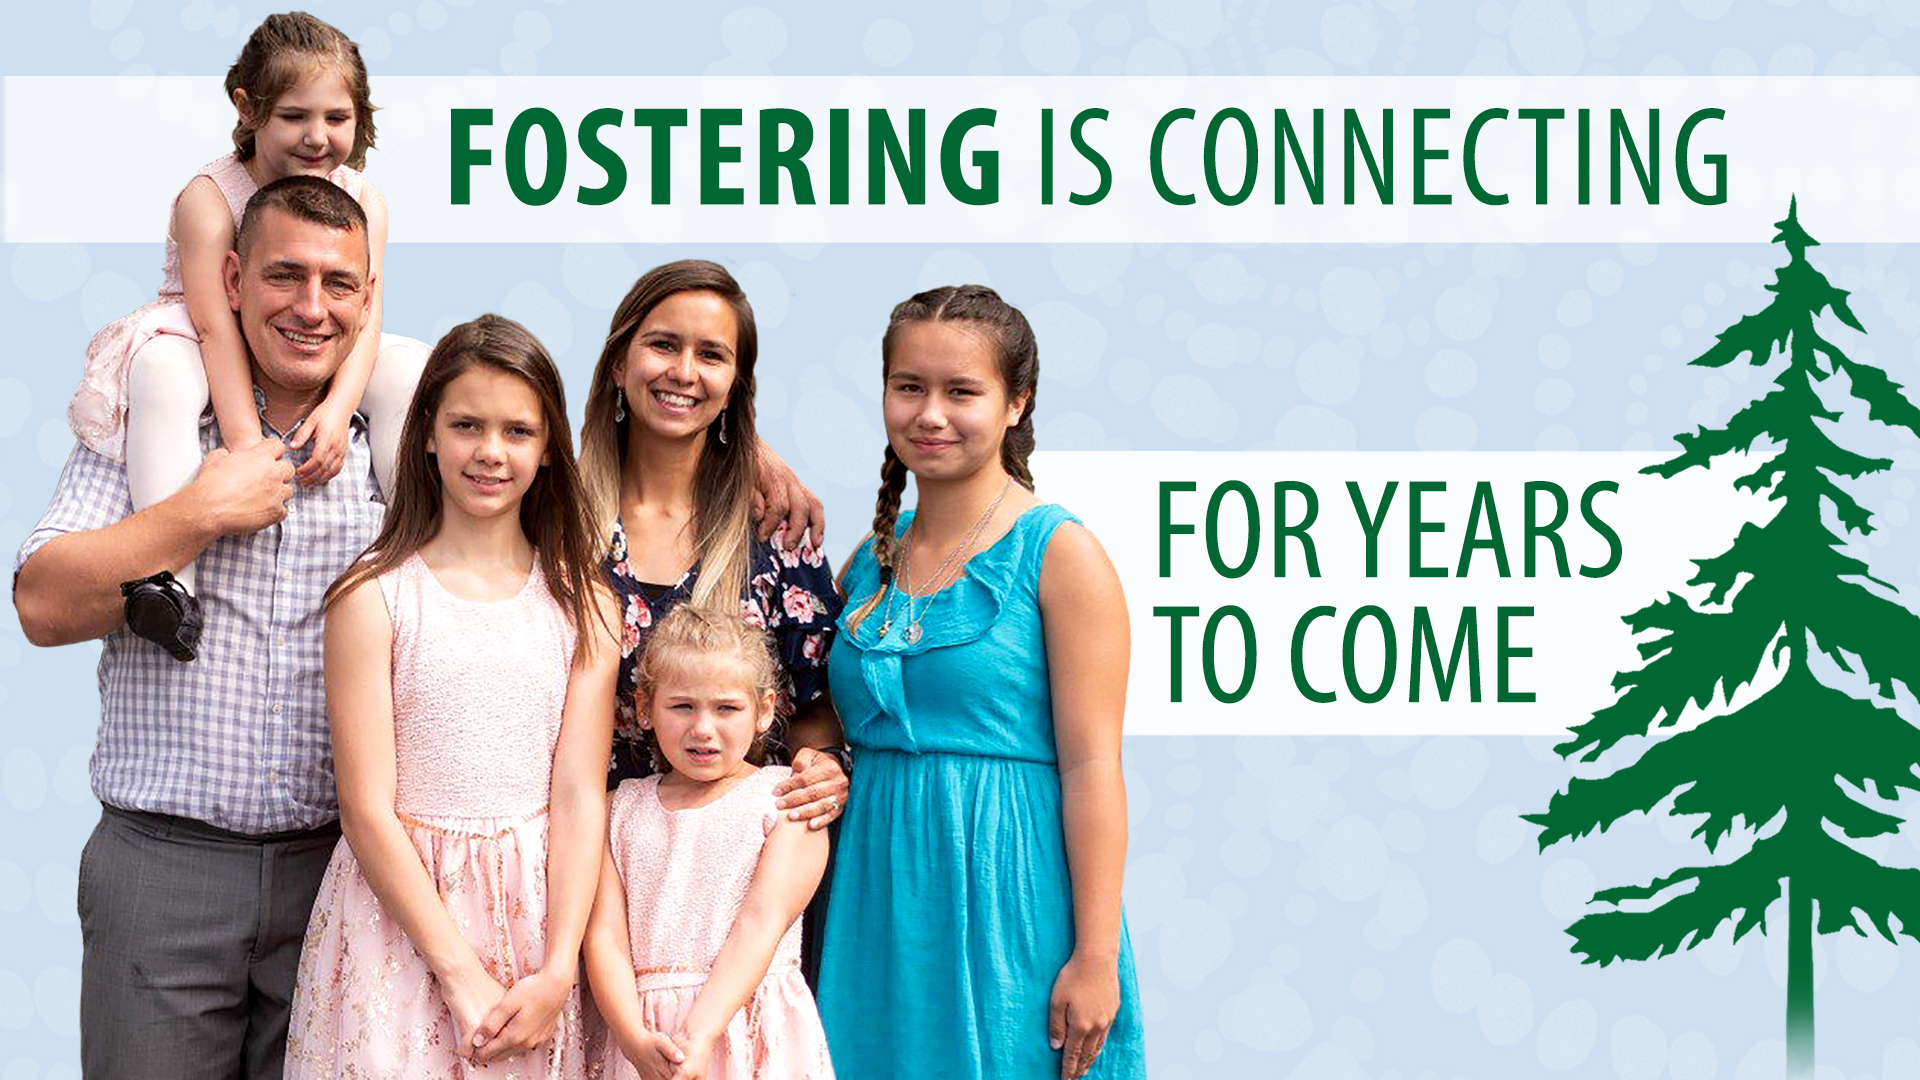 Fostering is Connecting